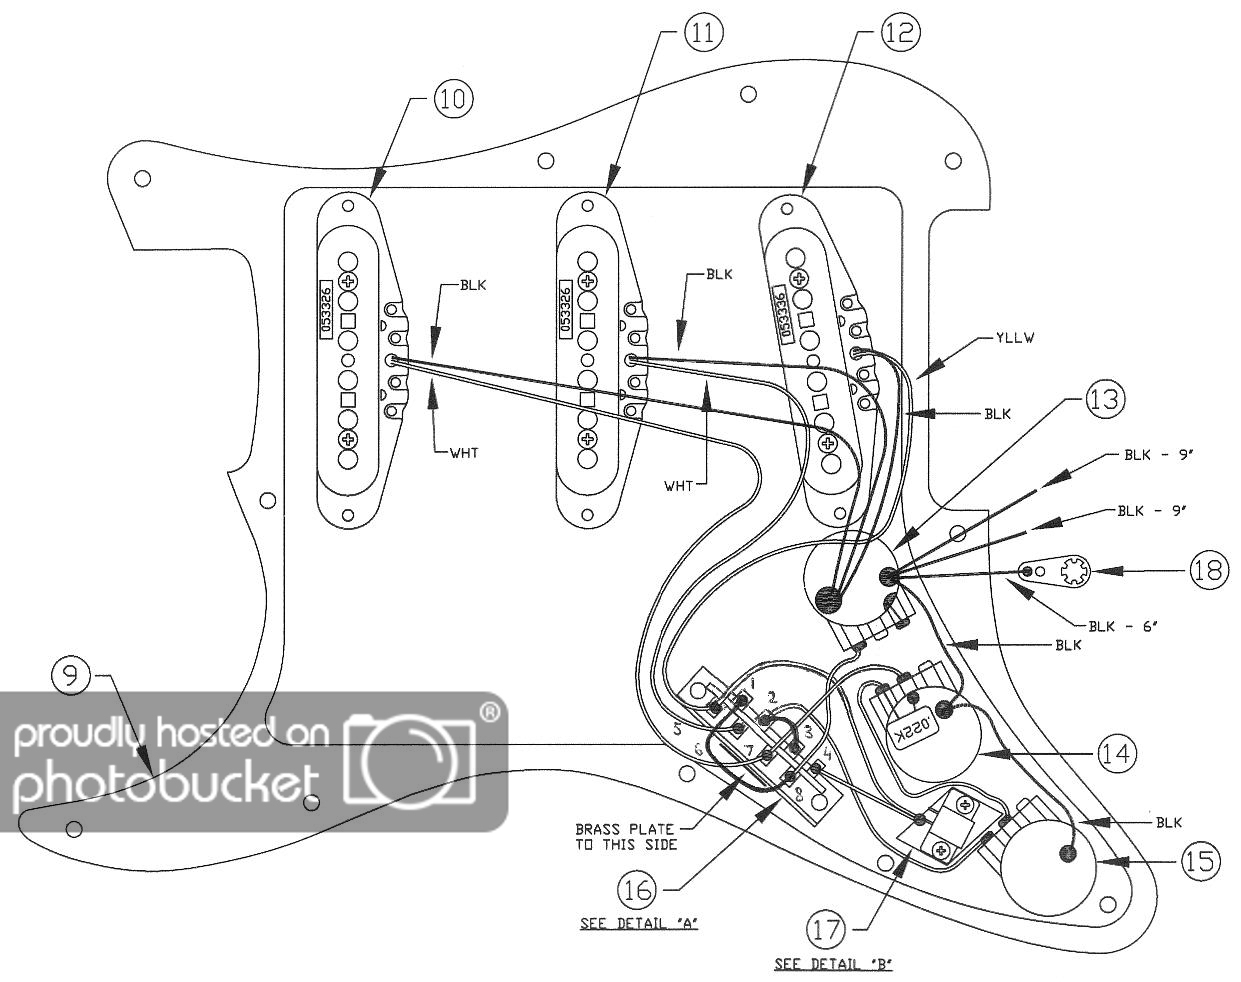 Deluxe Player Strat - Wiring ? | The Gear Page - Fender Strat Wiring Diagram